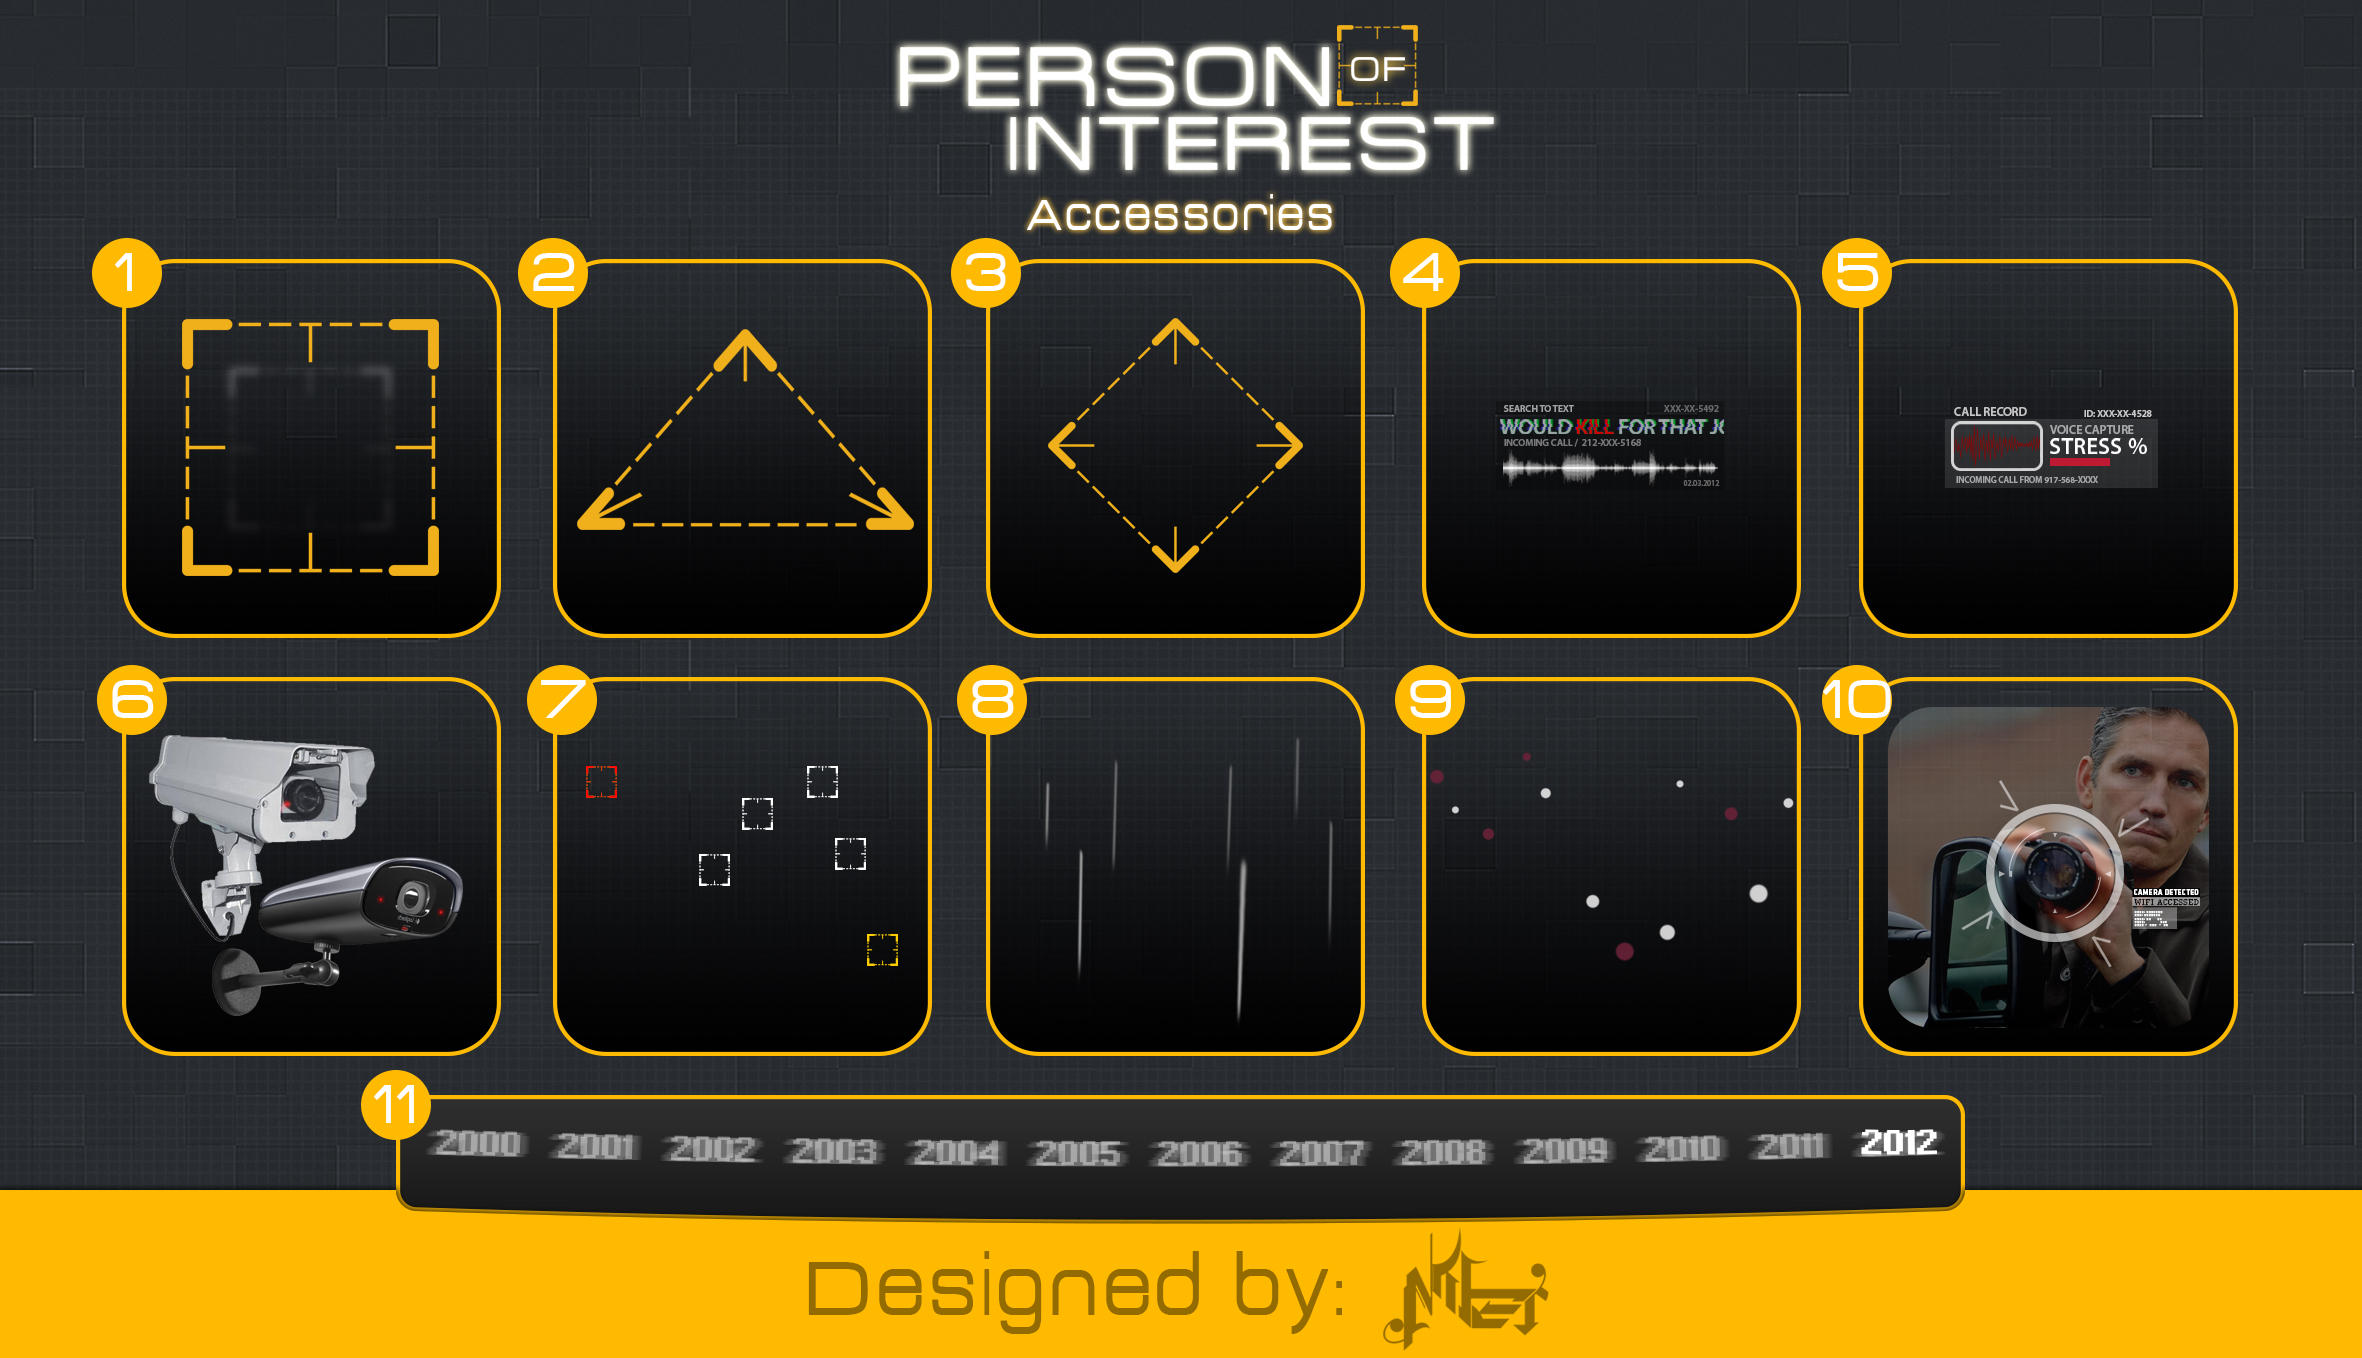 Person of Interest - Accessories| PSD by Ameer108